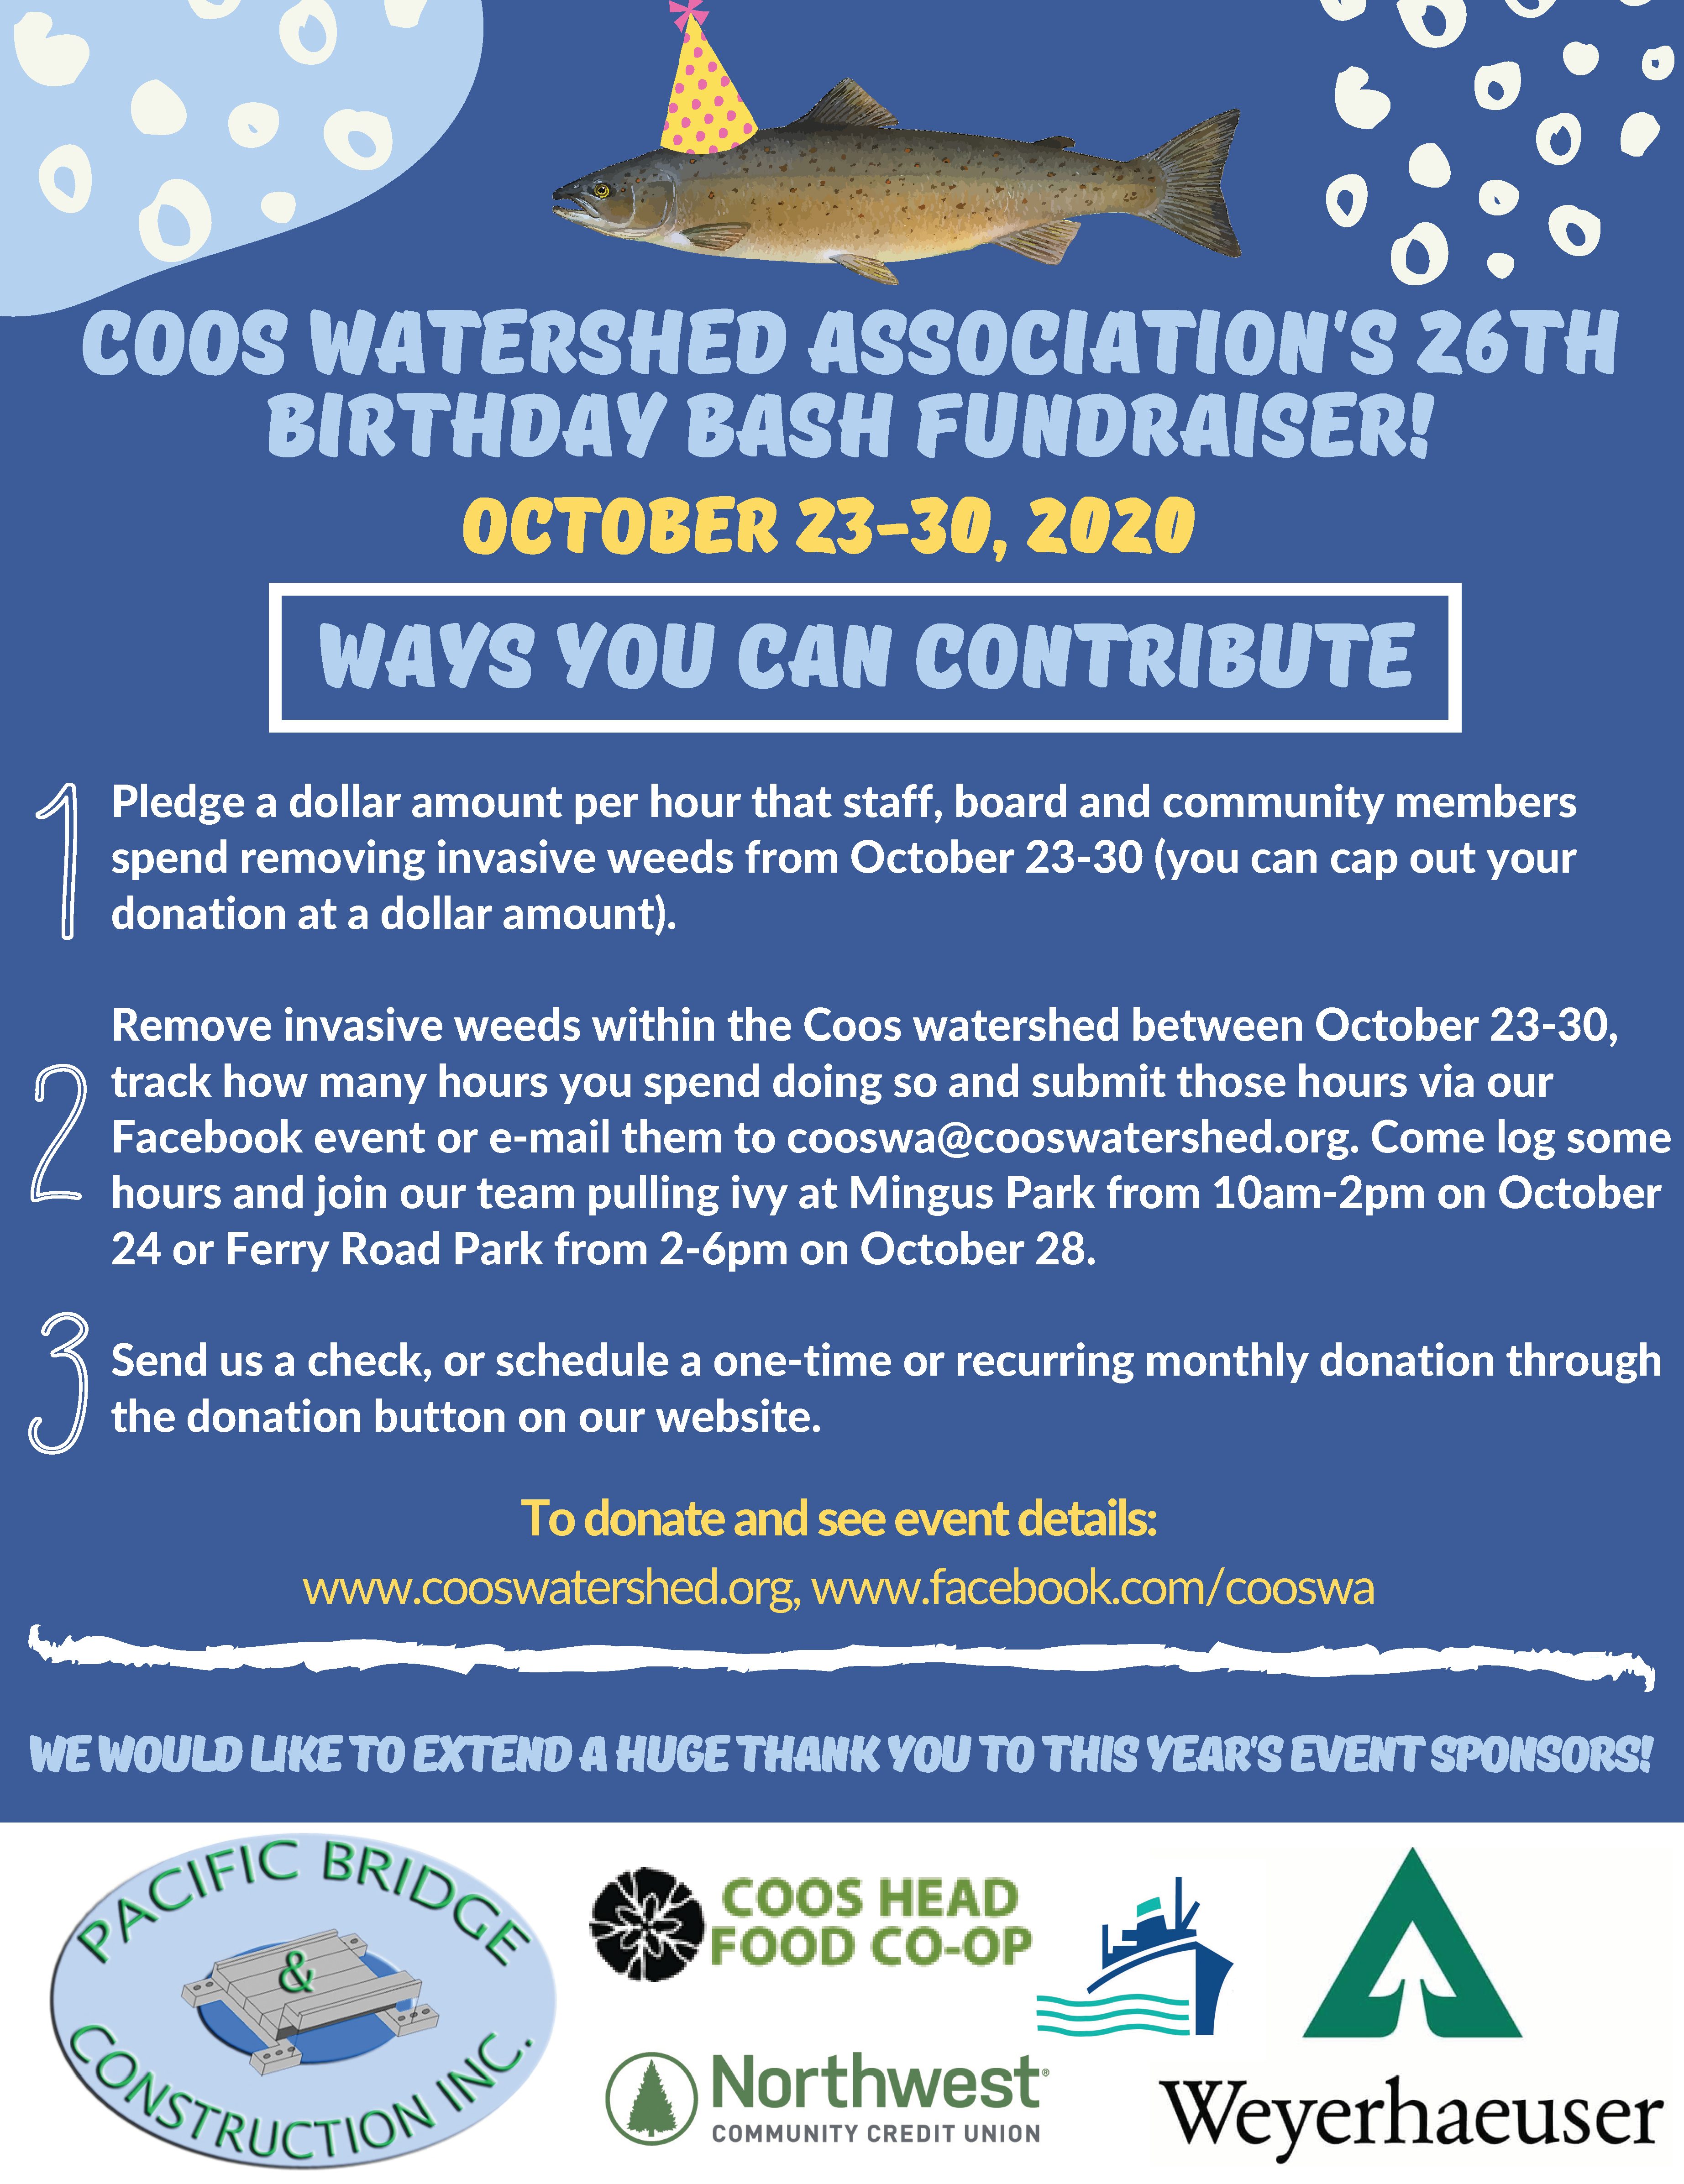 Main flyer_how to contribute_updated 10-21-2020